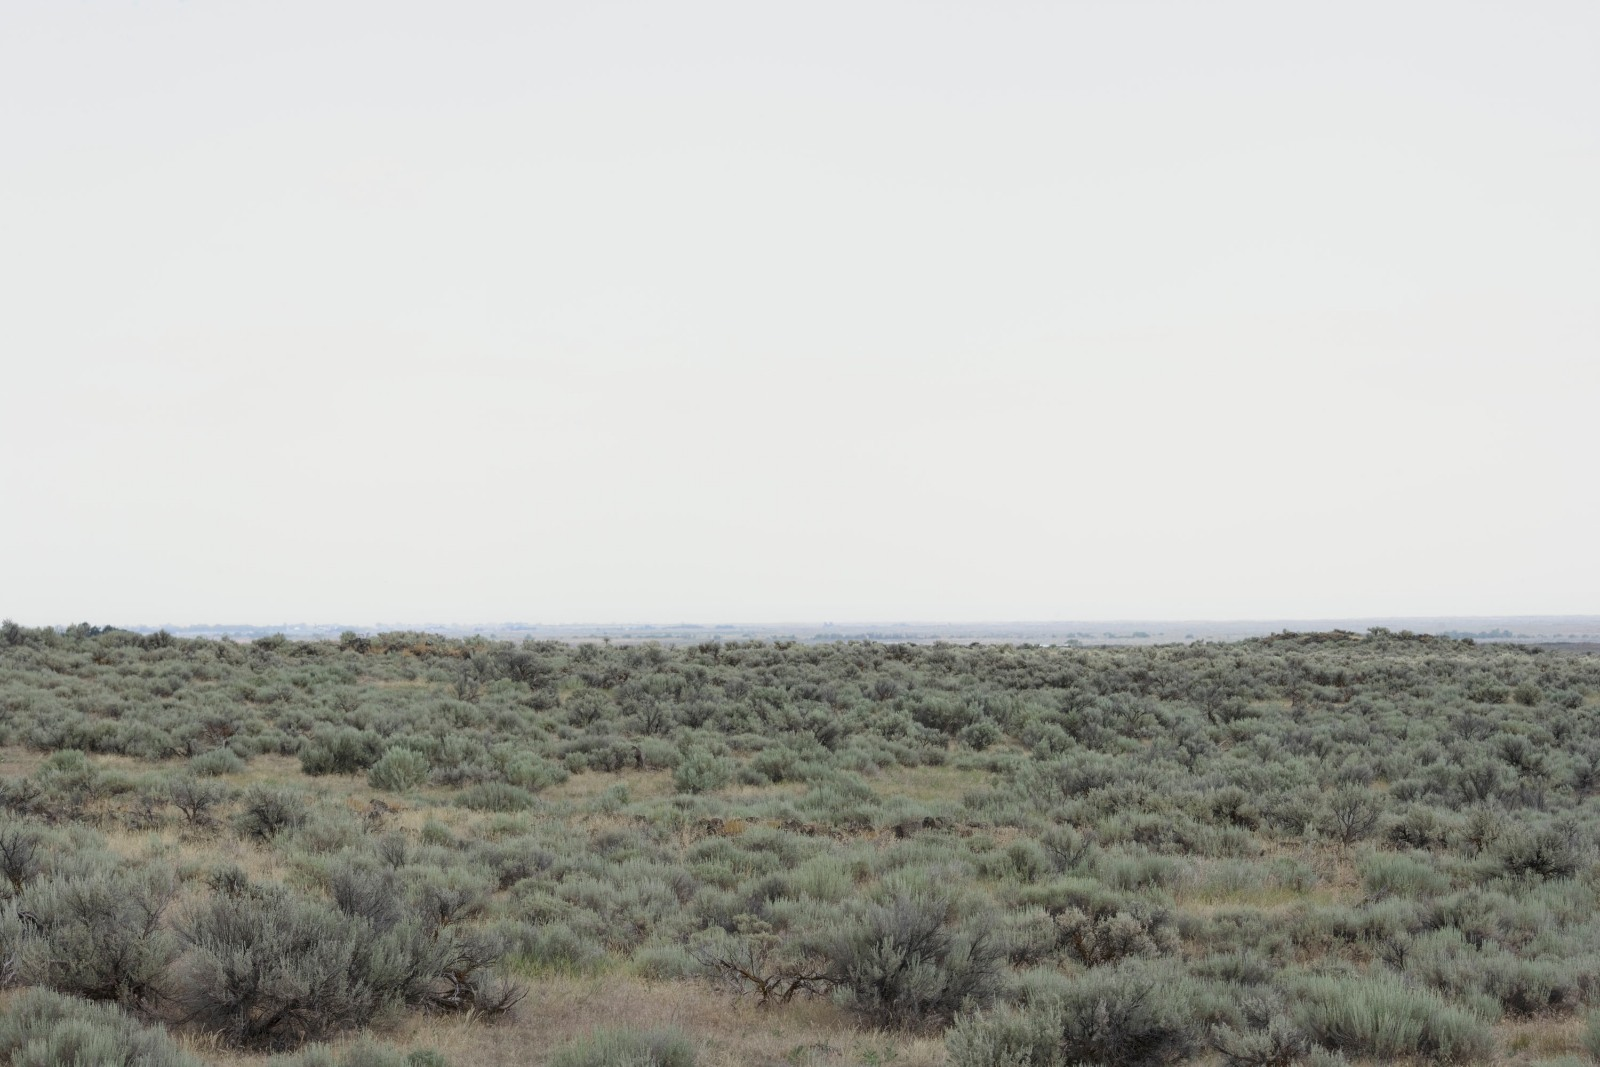 From the west, 2009, giclée print mounted on aluminum, 120 x 180 cm, ed. 5